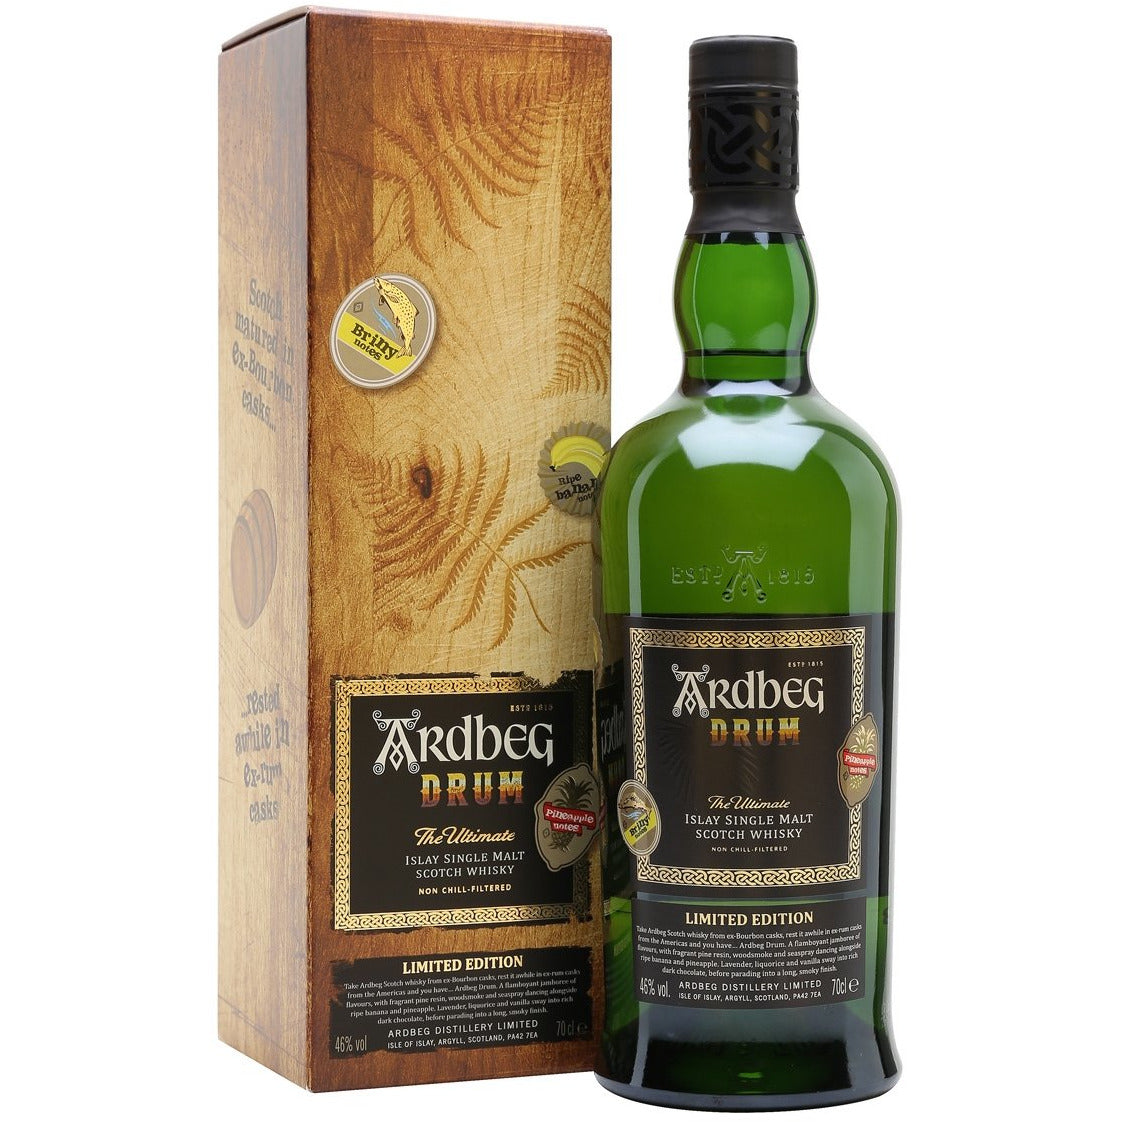 Ardbeg Drum Islay Single Malt Whisky 750 mL